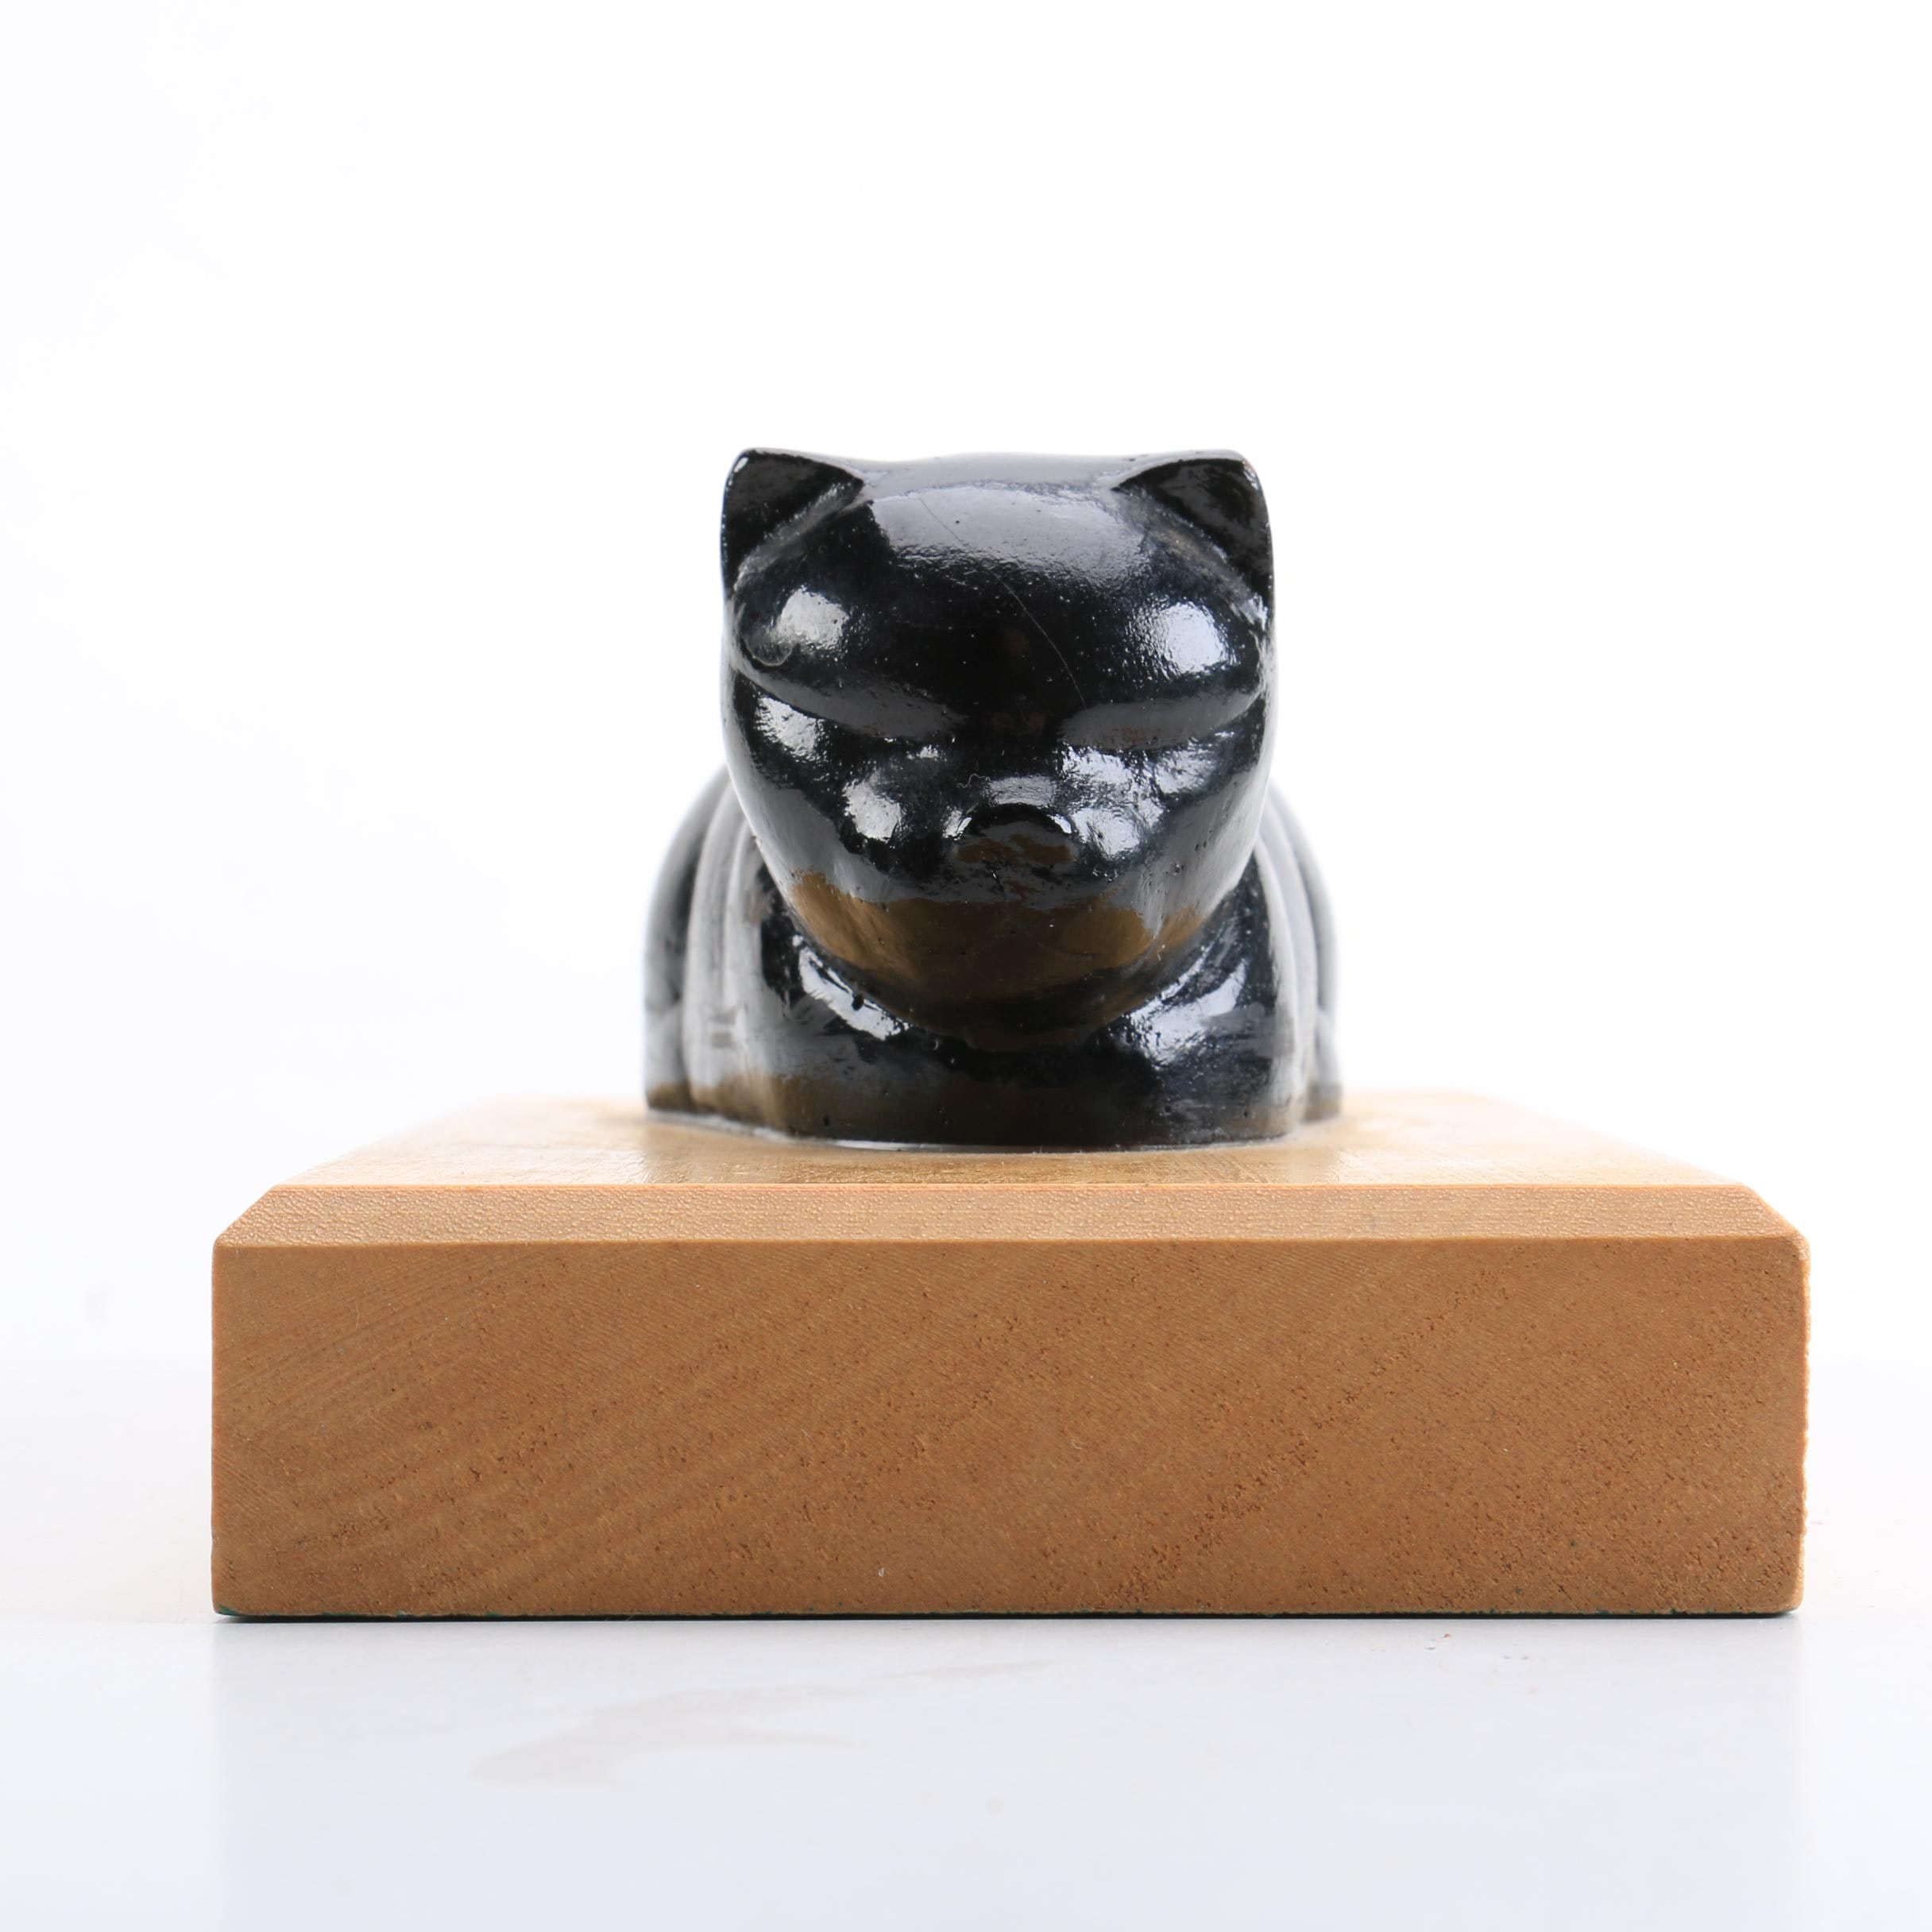 Late 20th-Century Resin Sculpture of Black Cat After Beniamino Bufano